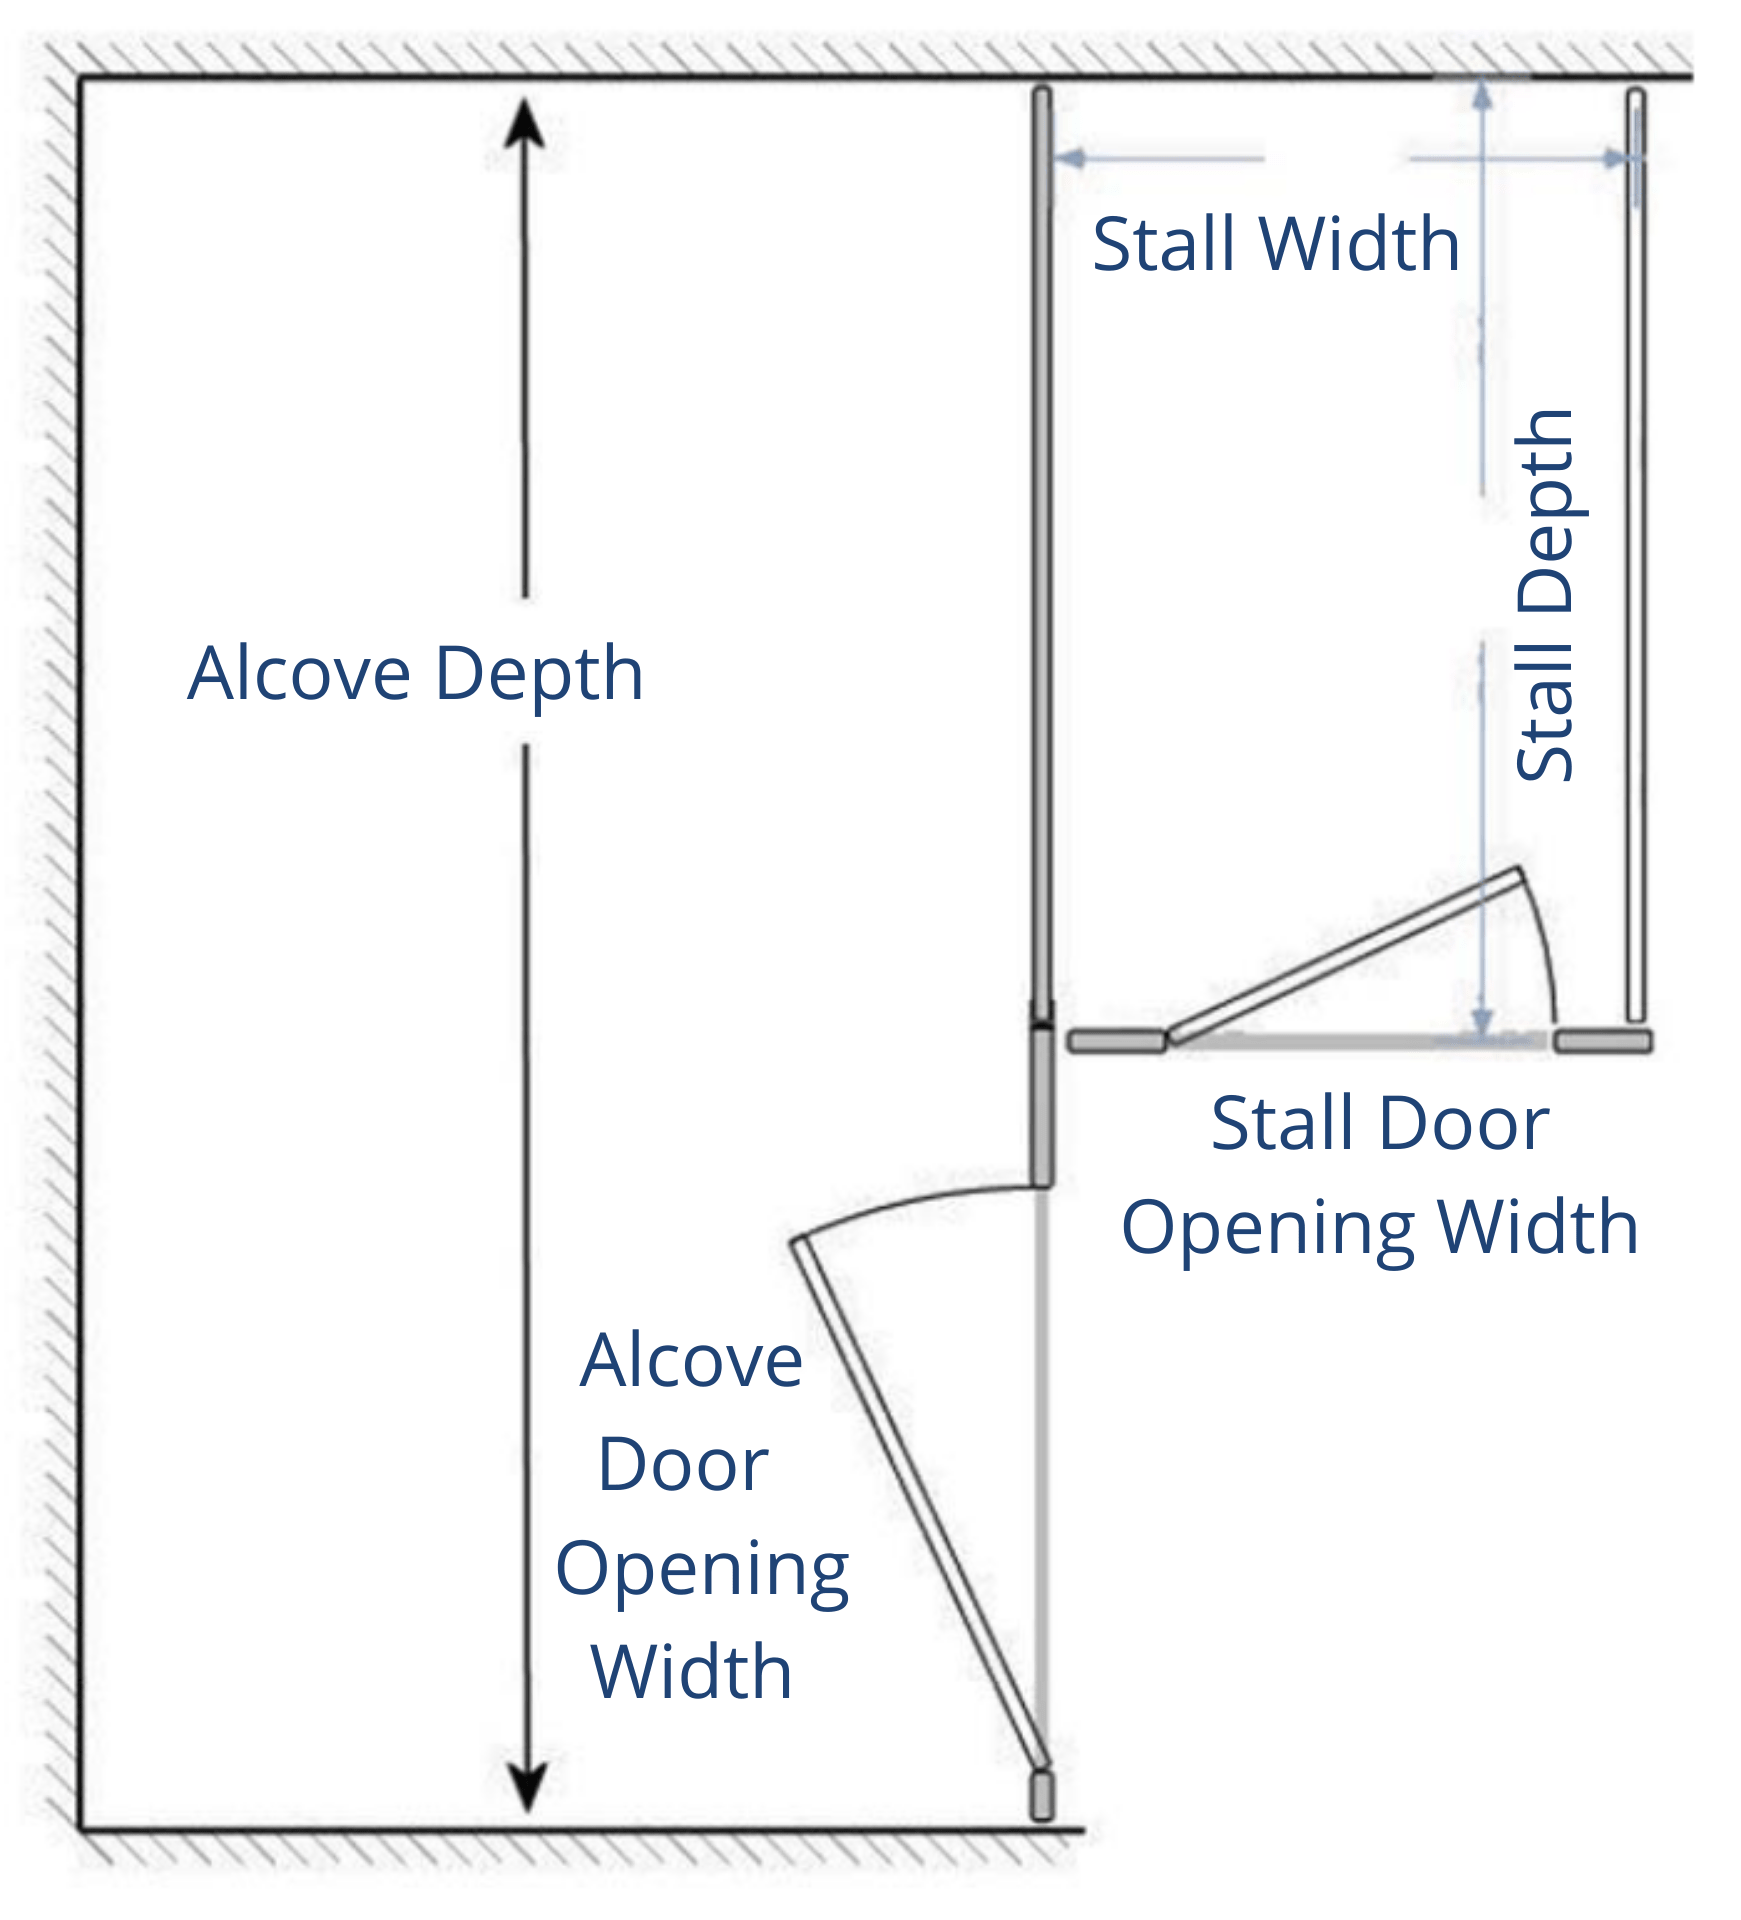 Alcove plus 1 Diagram